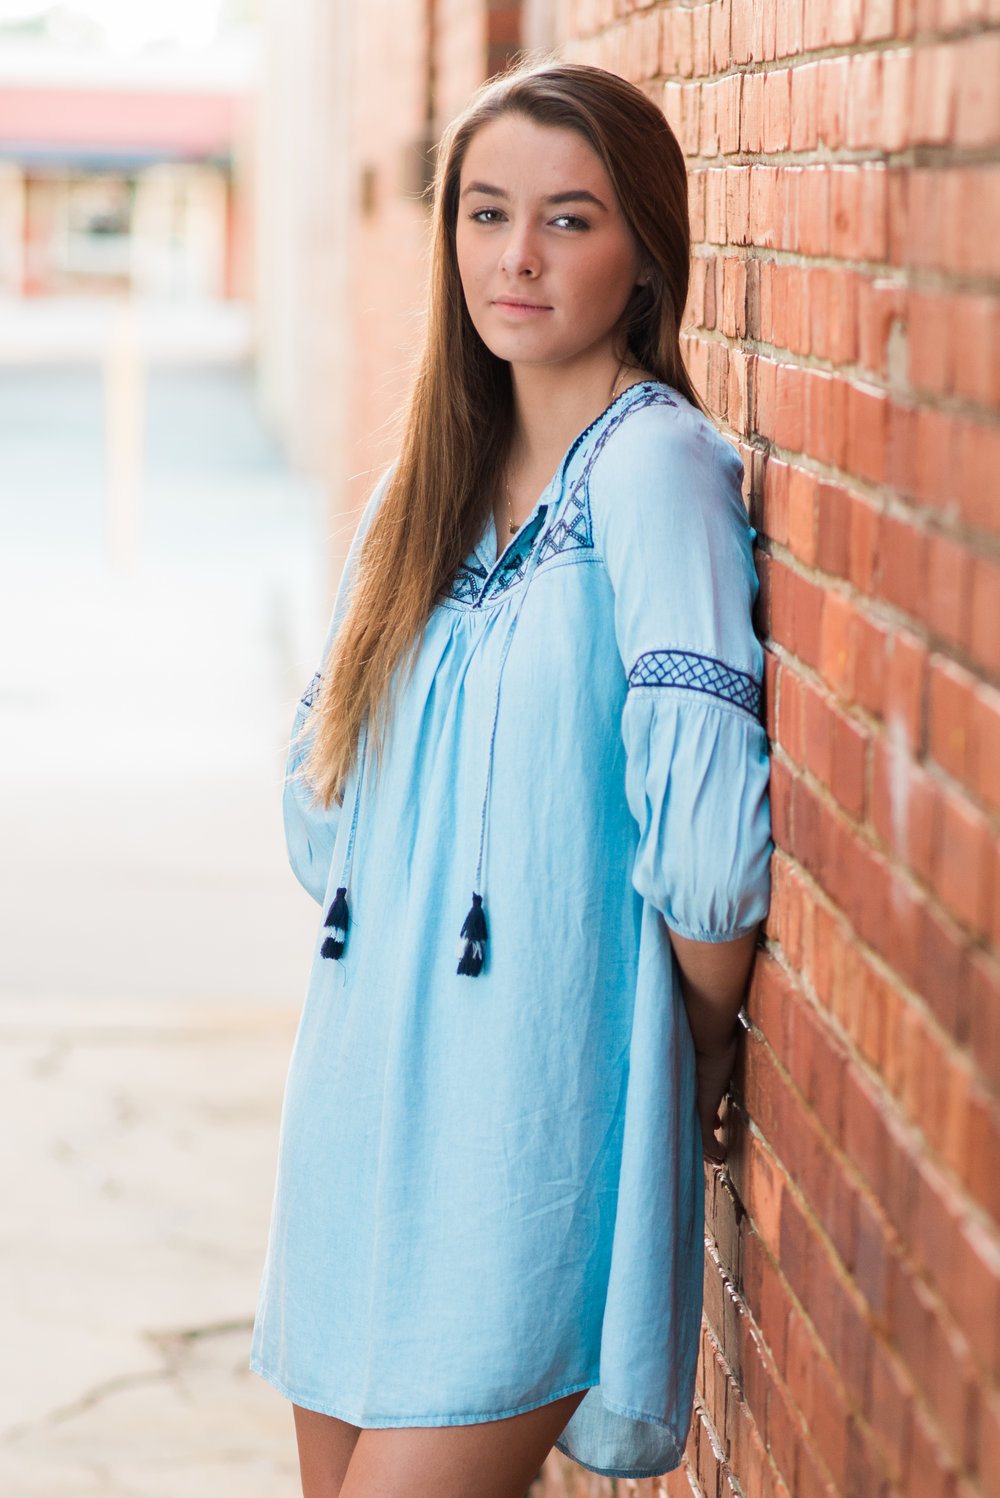 Mattie Senior Portraits-44.jpg